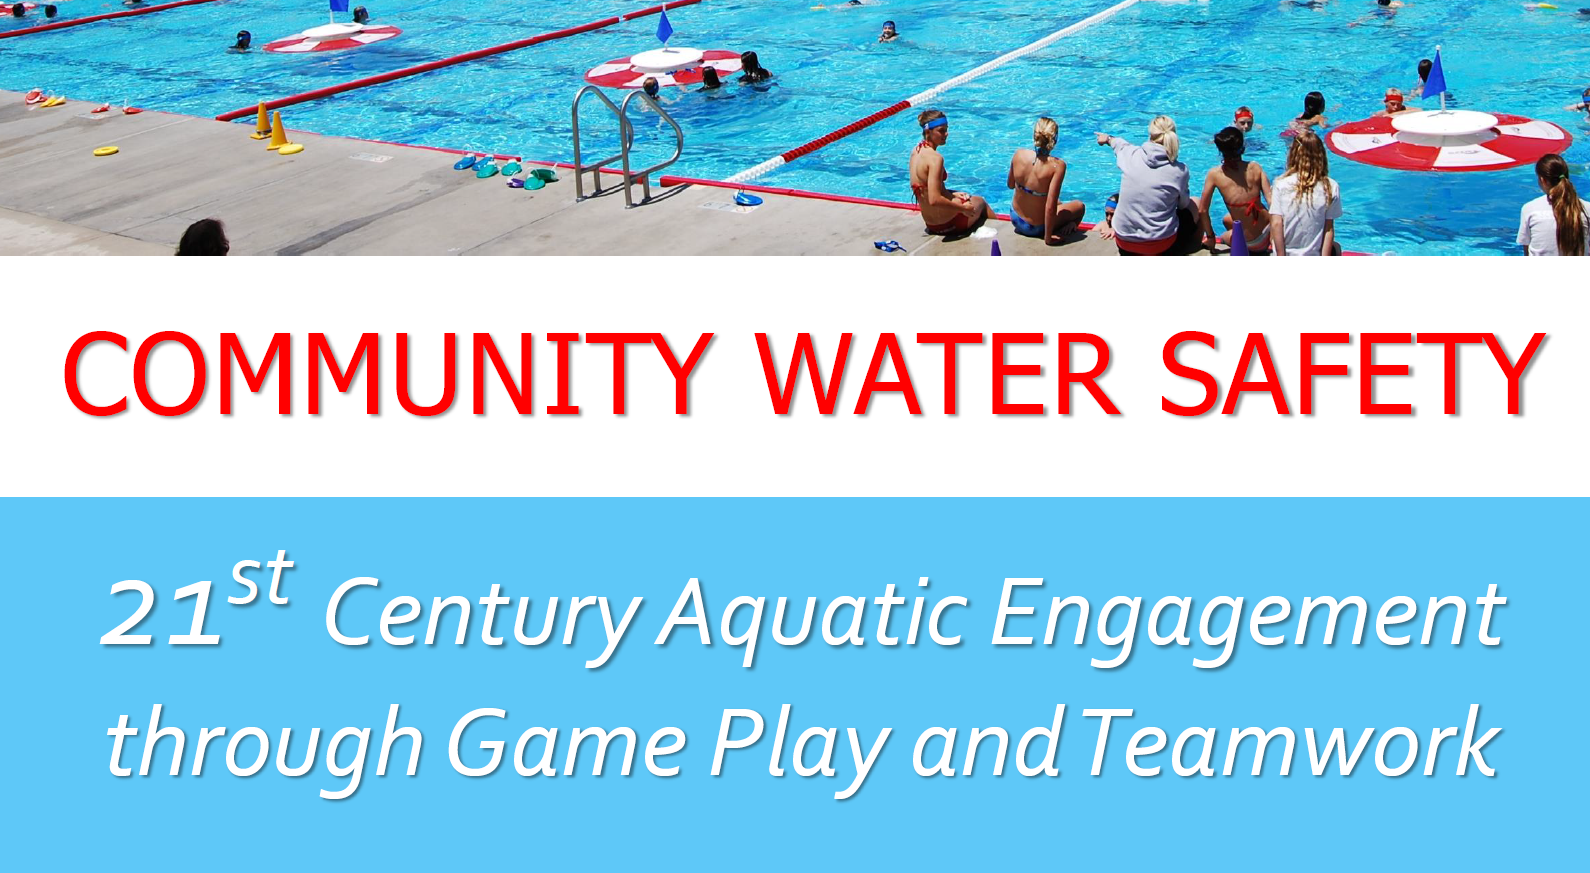 First slide and title: Community Water Safety -- 21st Centery Aquatic Engagement through Game Play and Teamwork